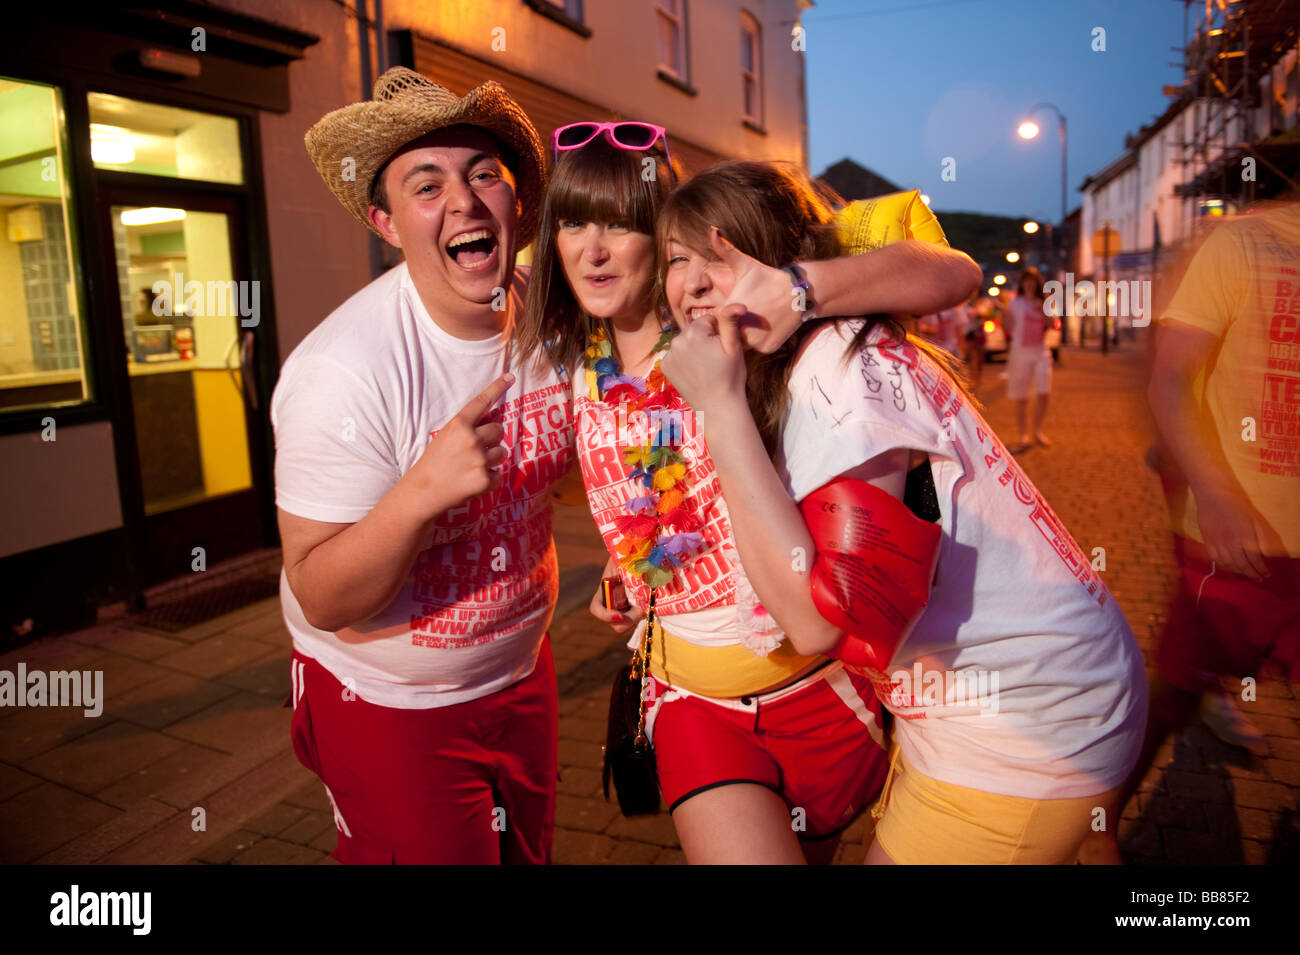 Three Aberystwyth University Students on a CARNAGE baywatch themed organised pub crawl around the town May 11 2009 - Stock Image